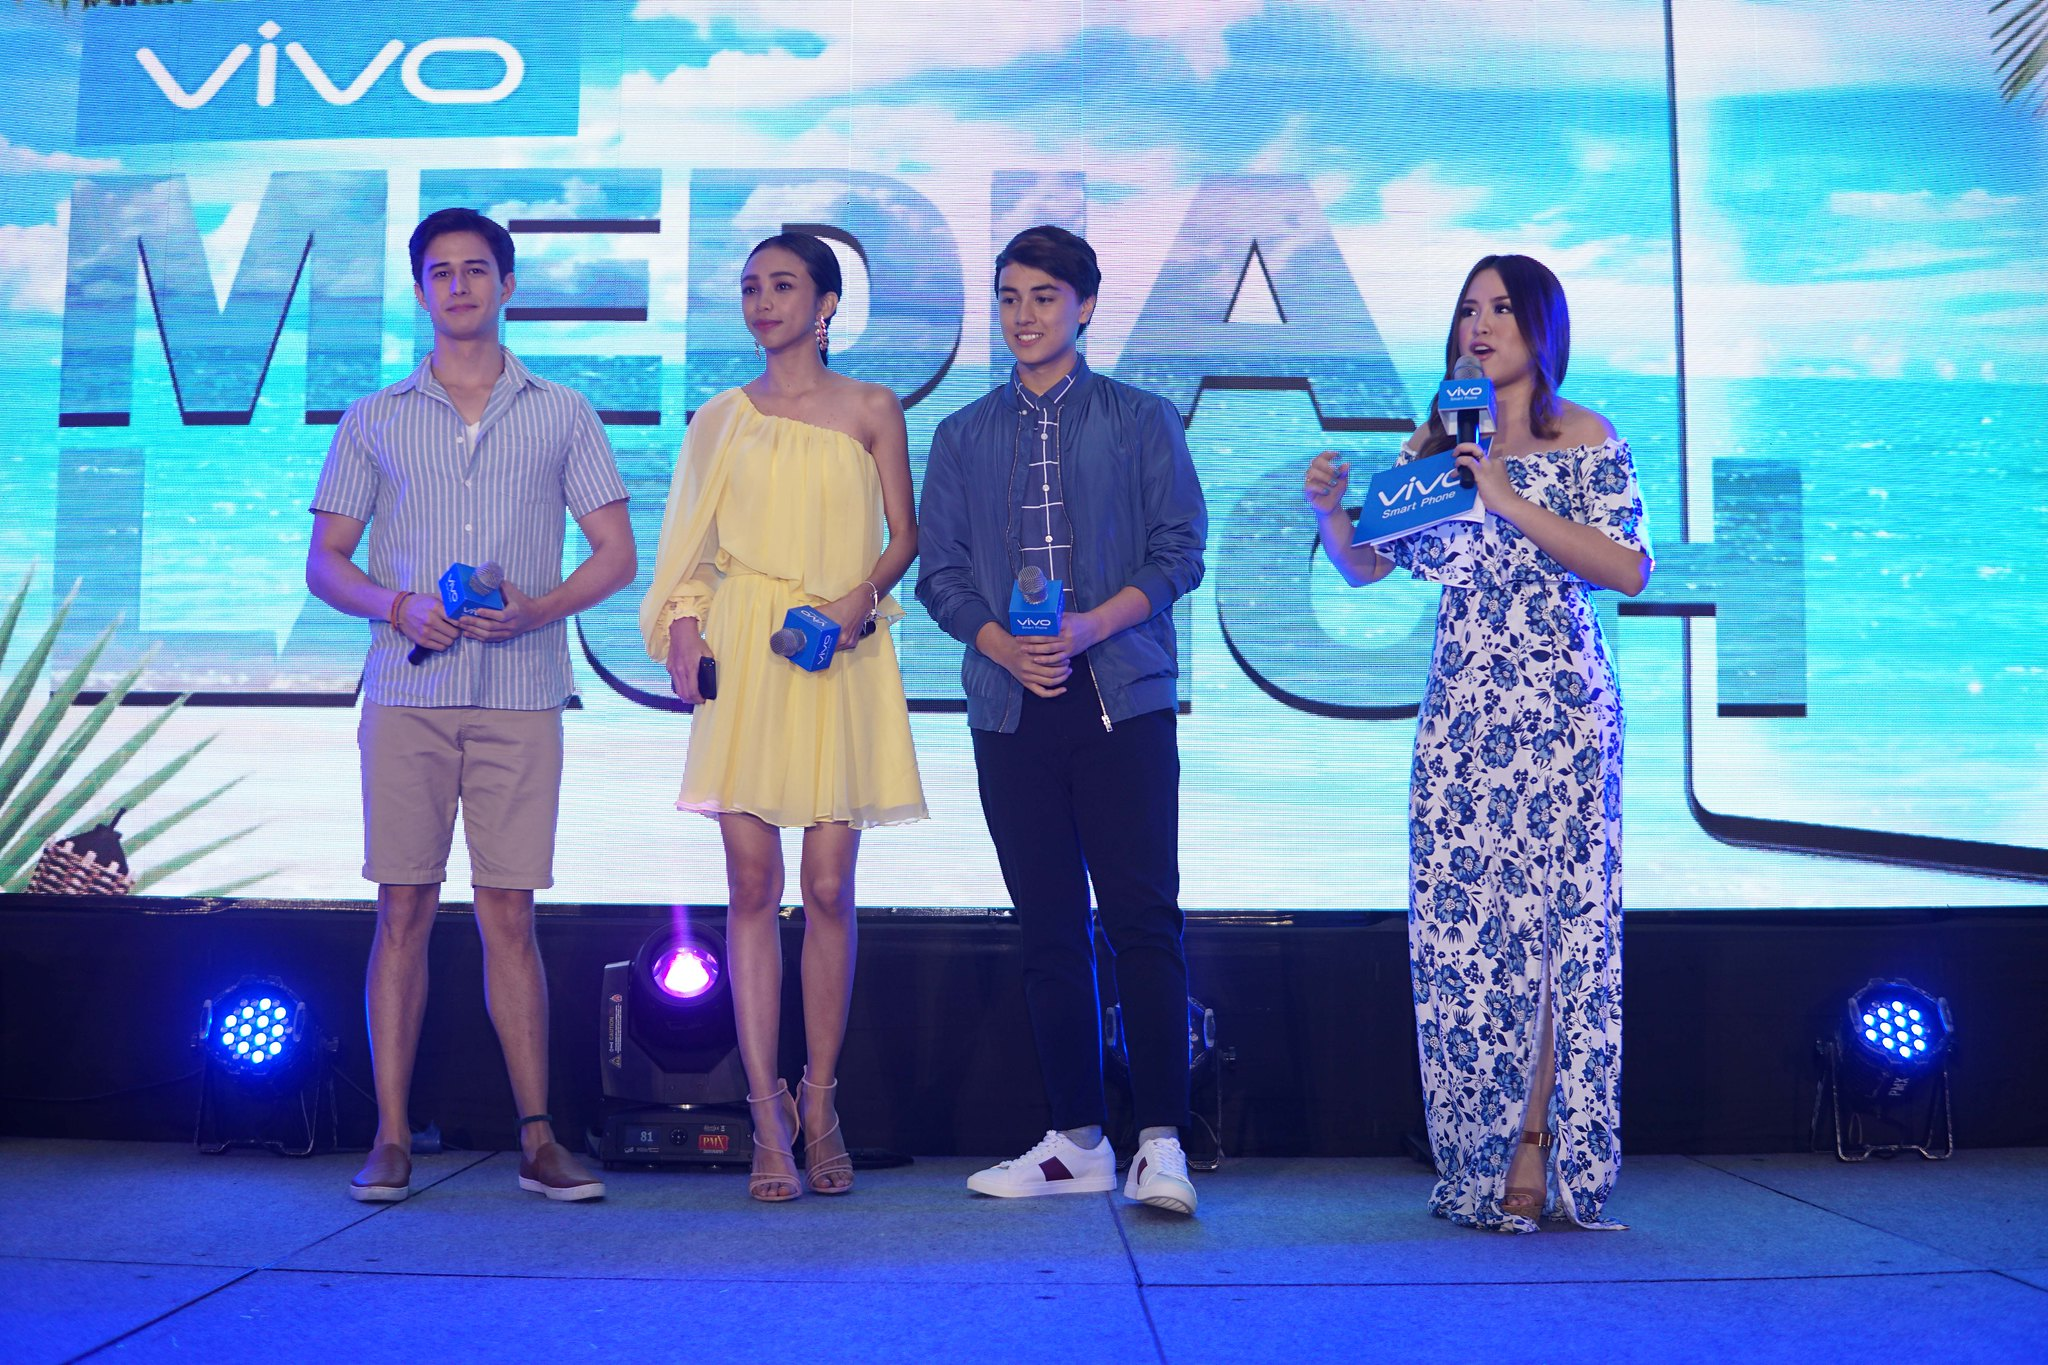 Tech News: Vivo V9 Launch + #Mayward for Vivo